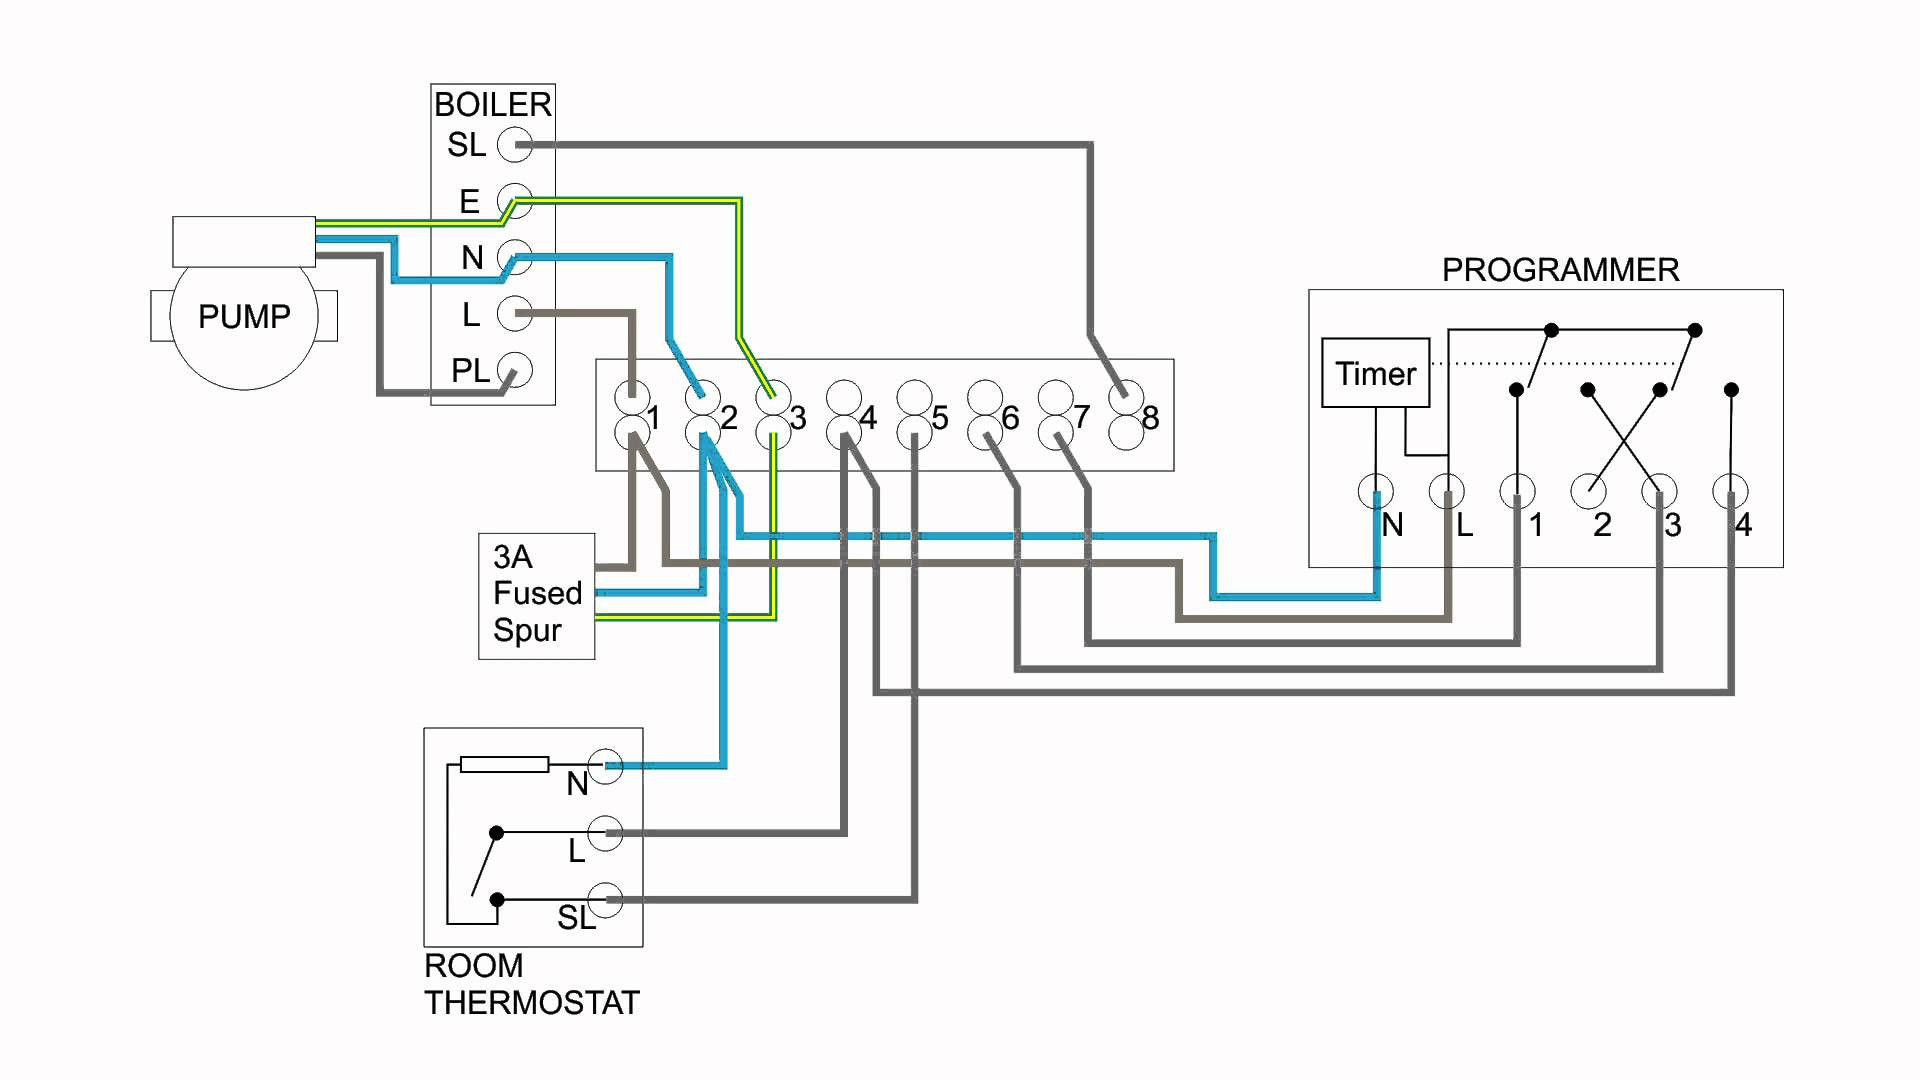 3 zone heating system wiring diagram collection